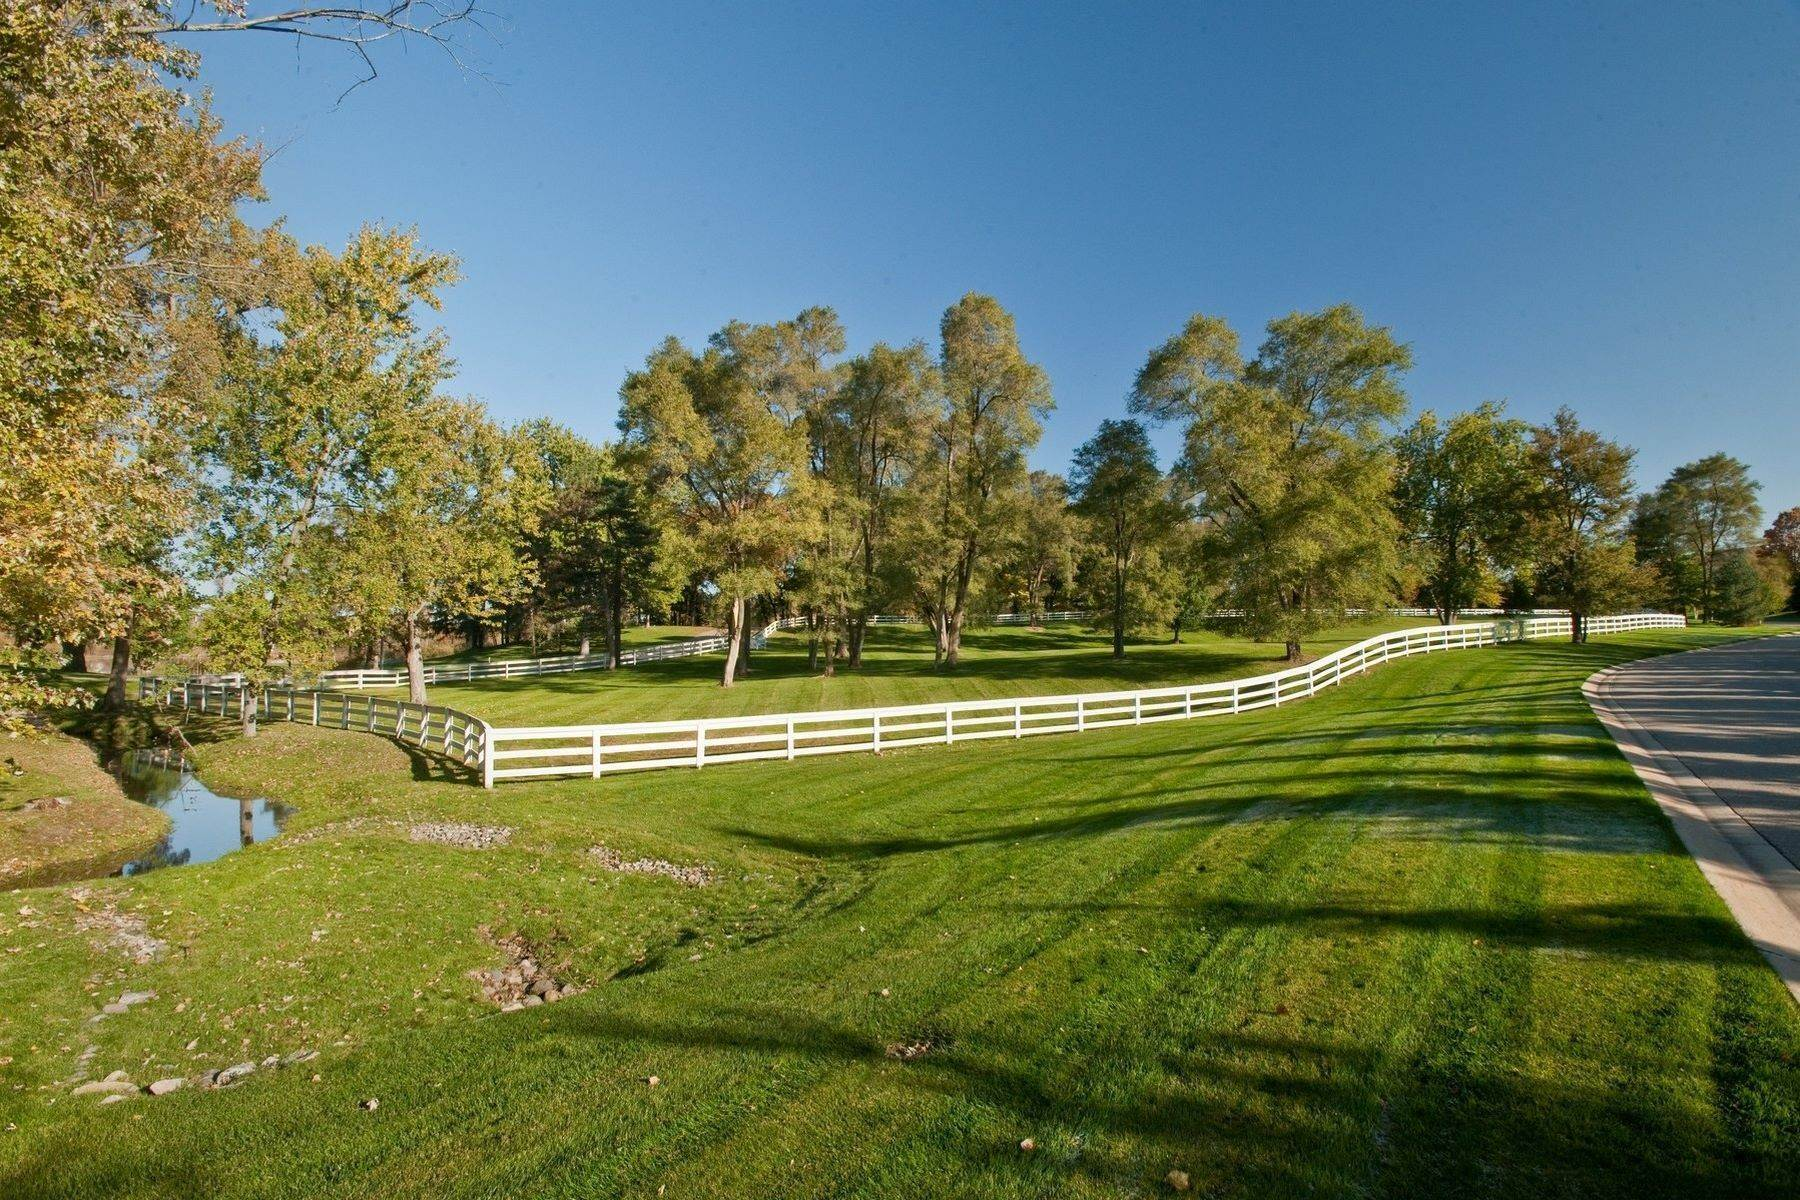 20. Property for Sale at The Stables 2670 Turtle Lake Drive, #44 and #45 Bloomfield Hills, Michigan 48302 United States